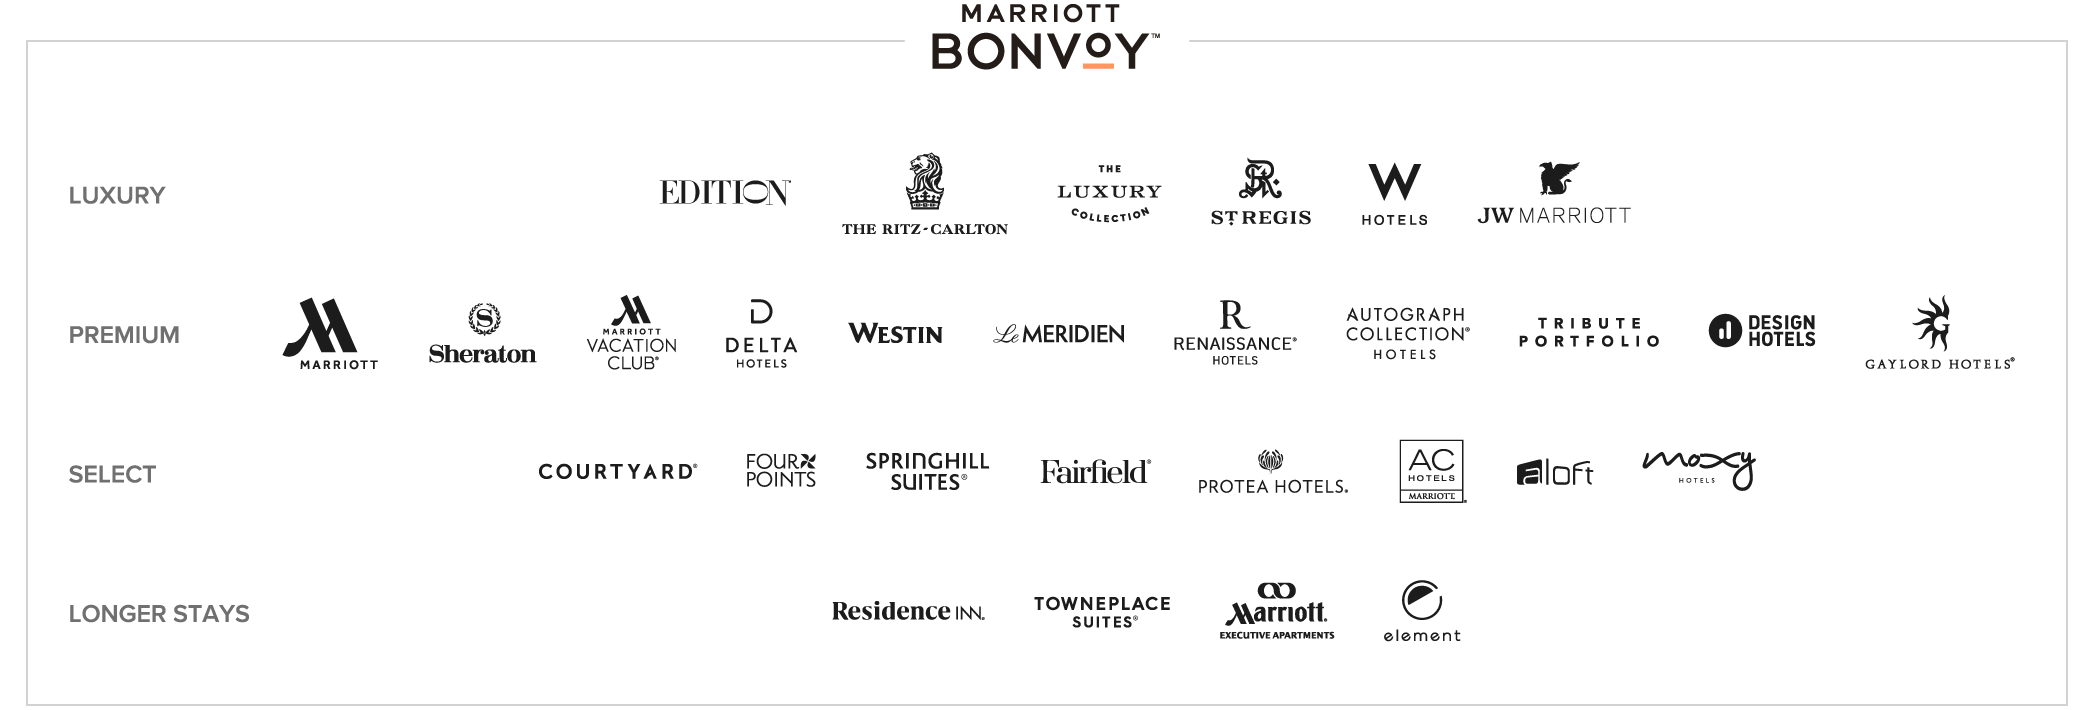 Logos for Marriott Bonvoy's participating hotel brands